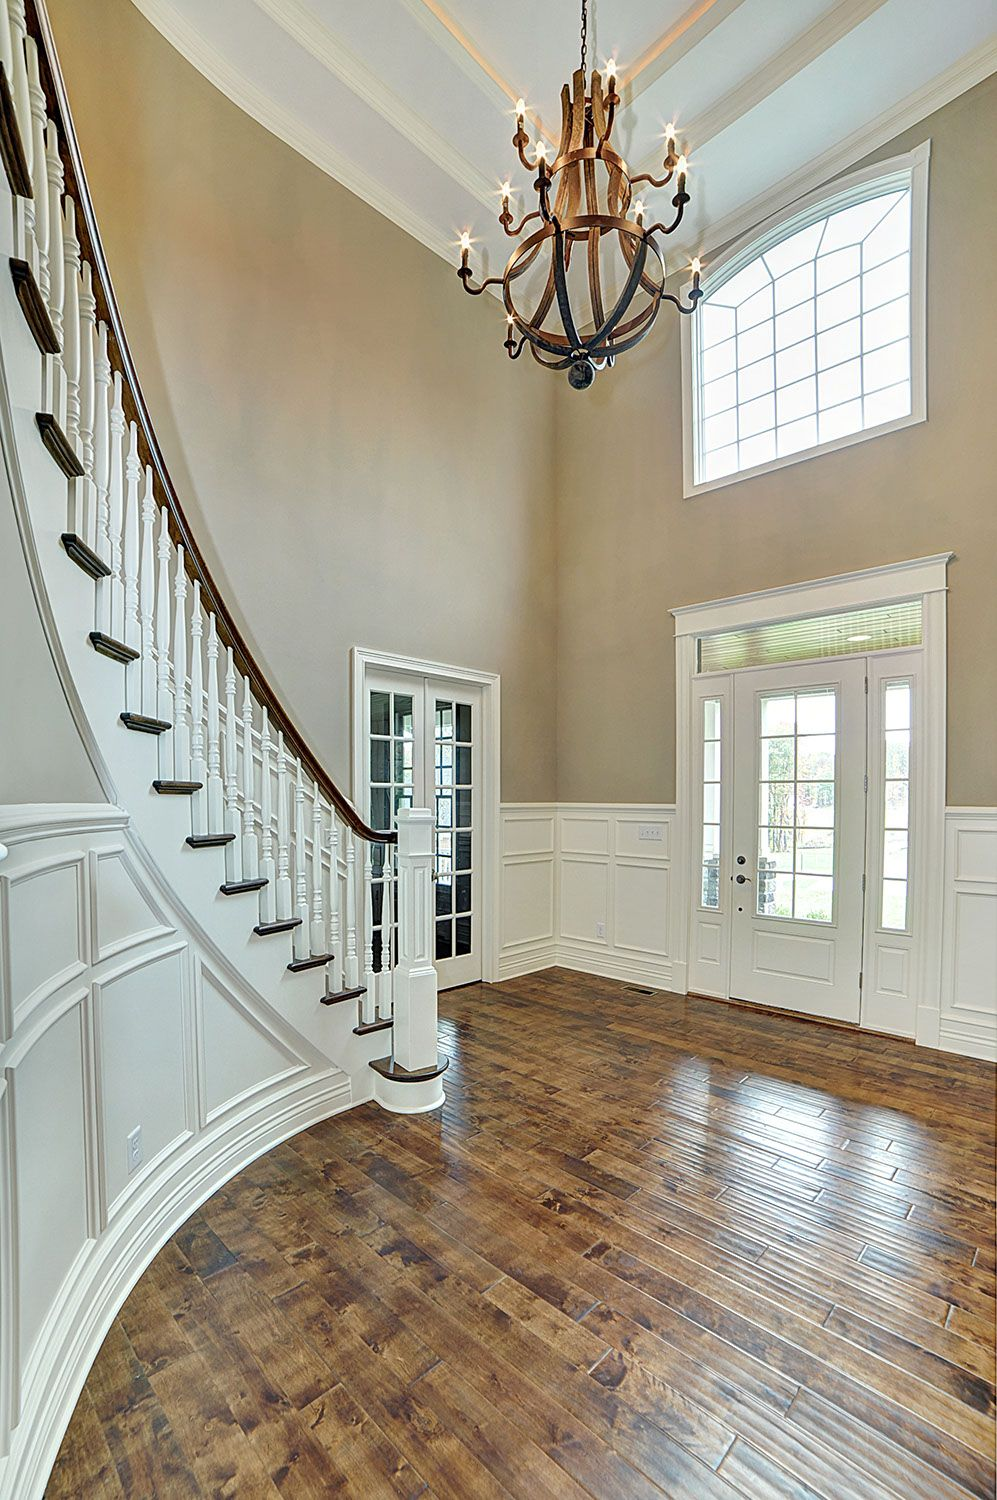 Entry Foyer Plans : Curved staircase in two story foyer with white wainscoting